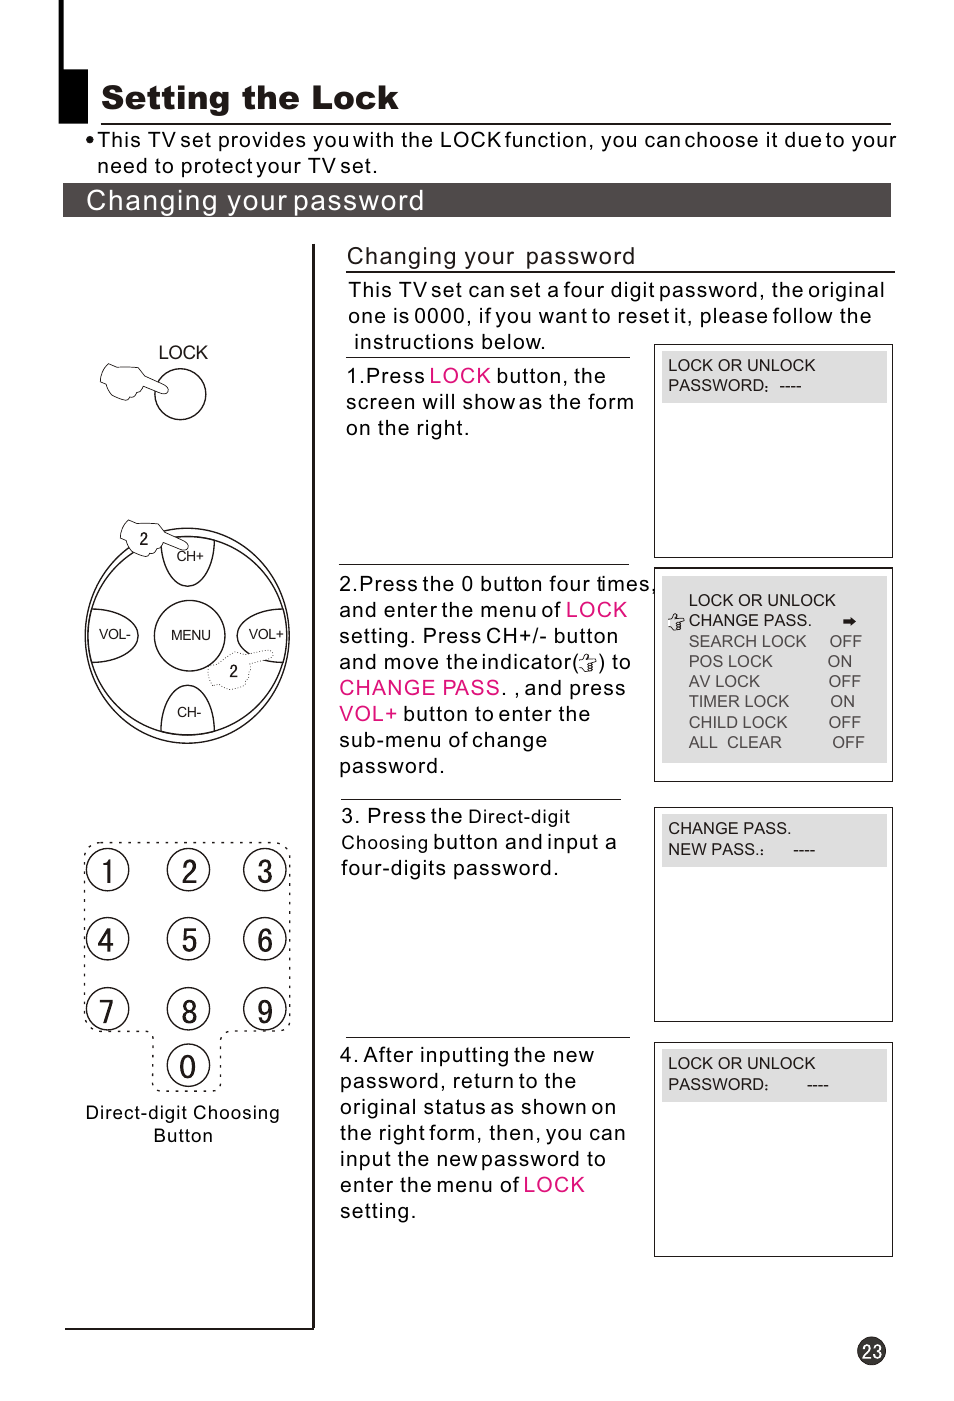 Т³гж 25, Setting the lock, Changing your password | haier HT-3768